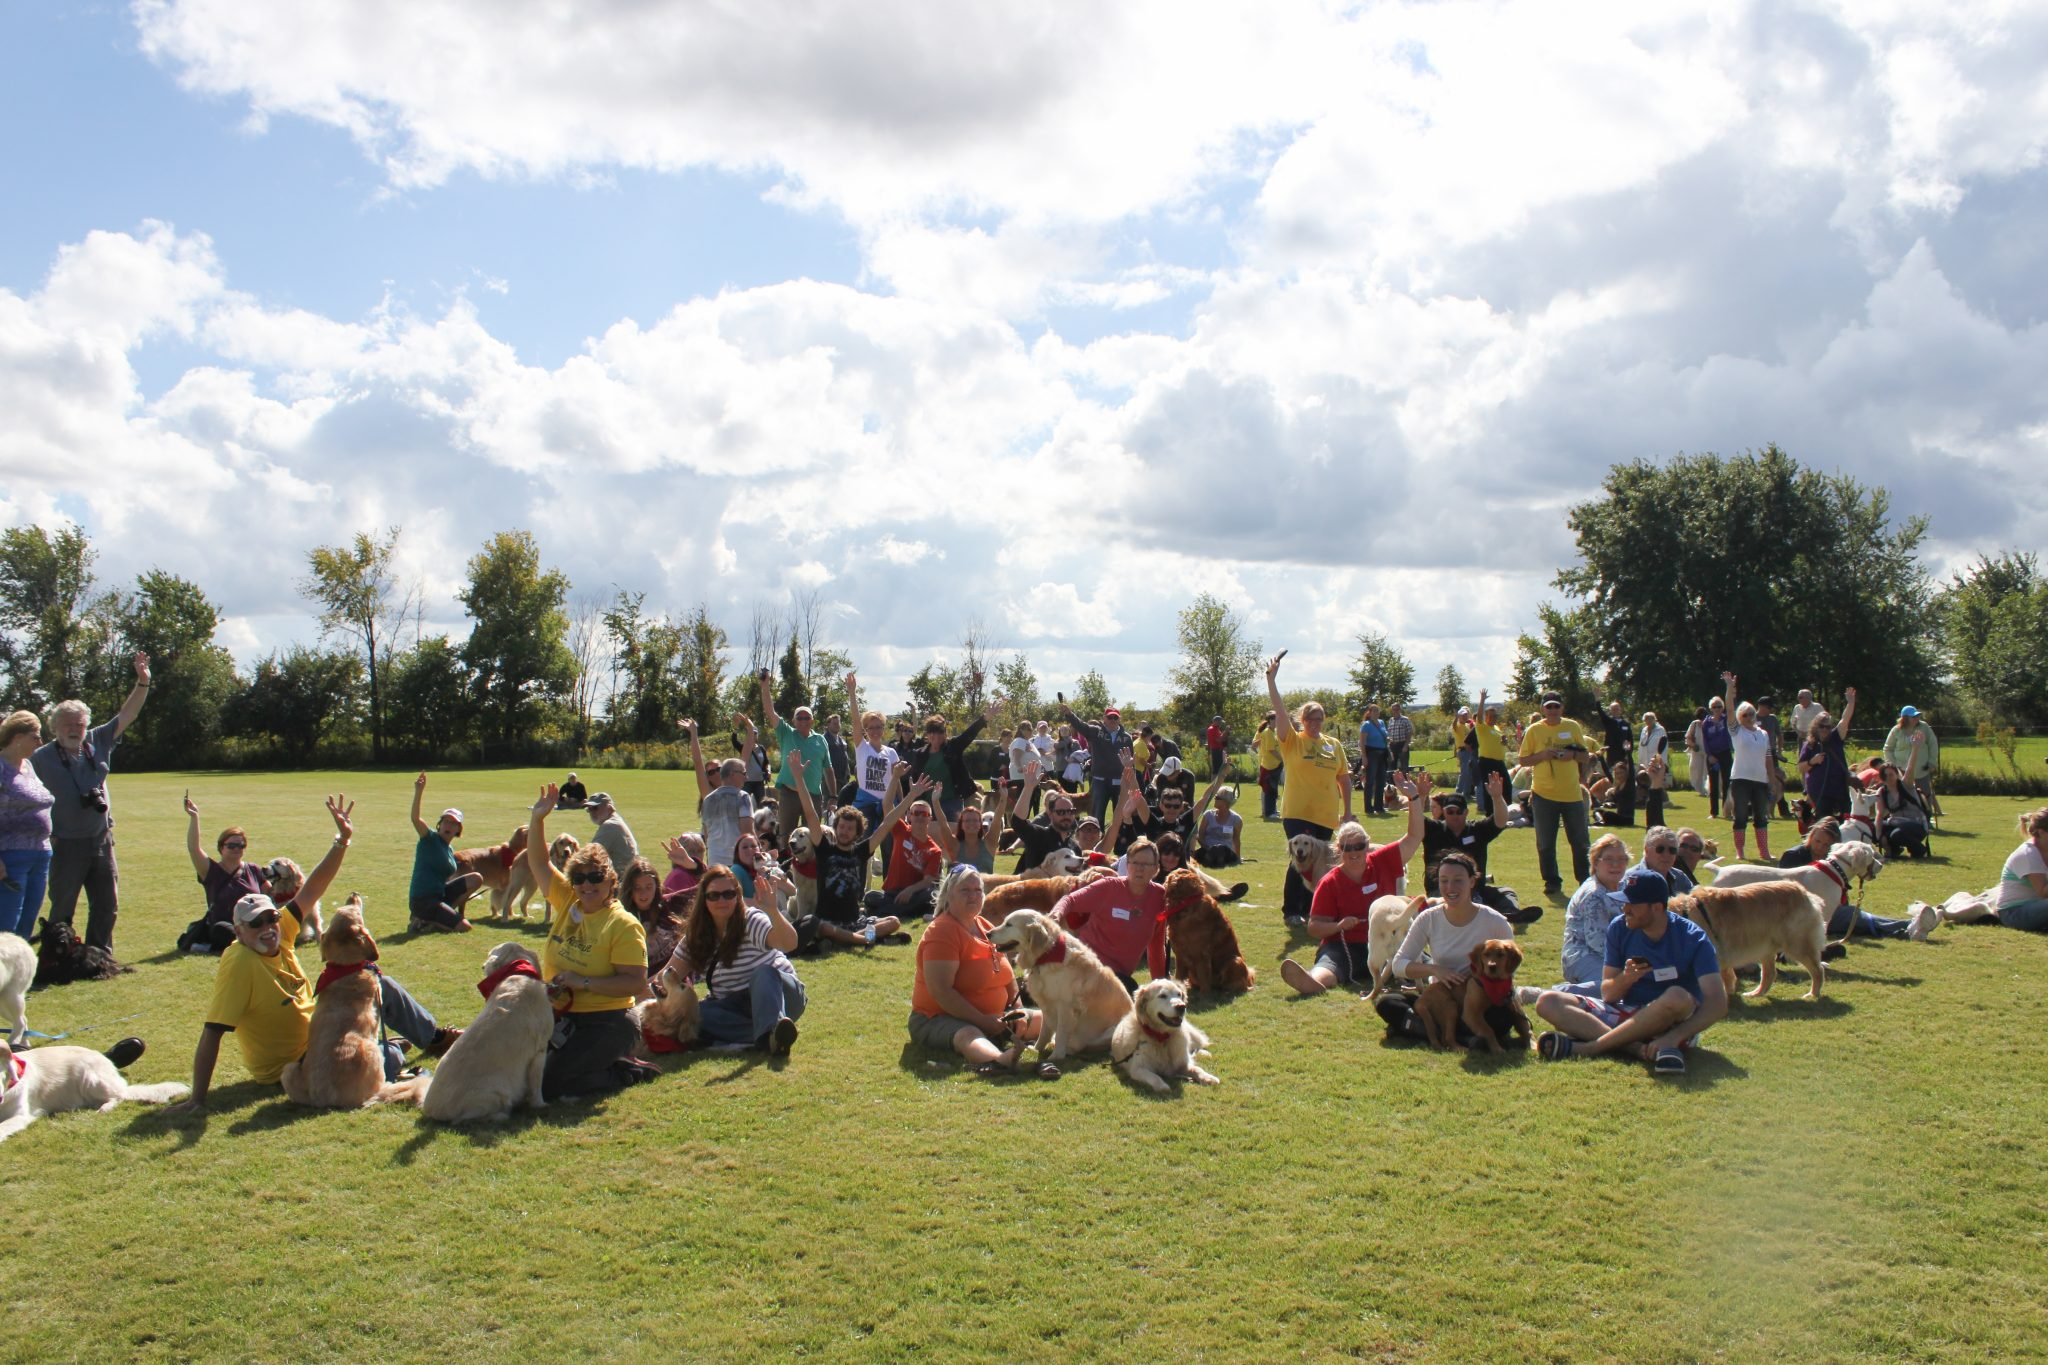 Peterborough Examiner: Guinness World Record Attempt